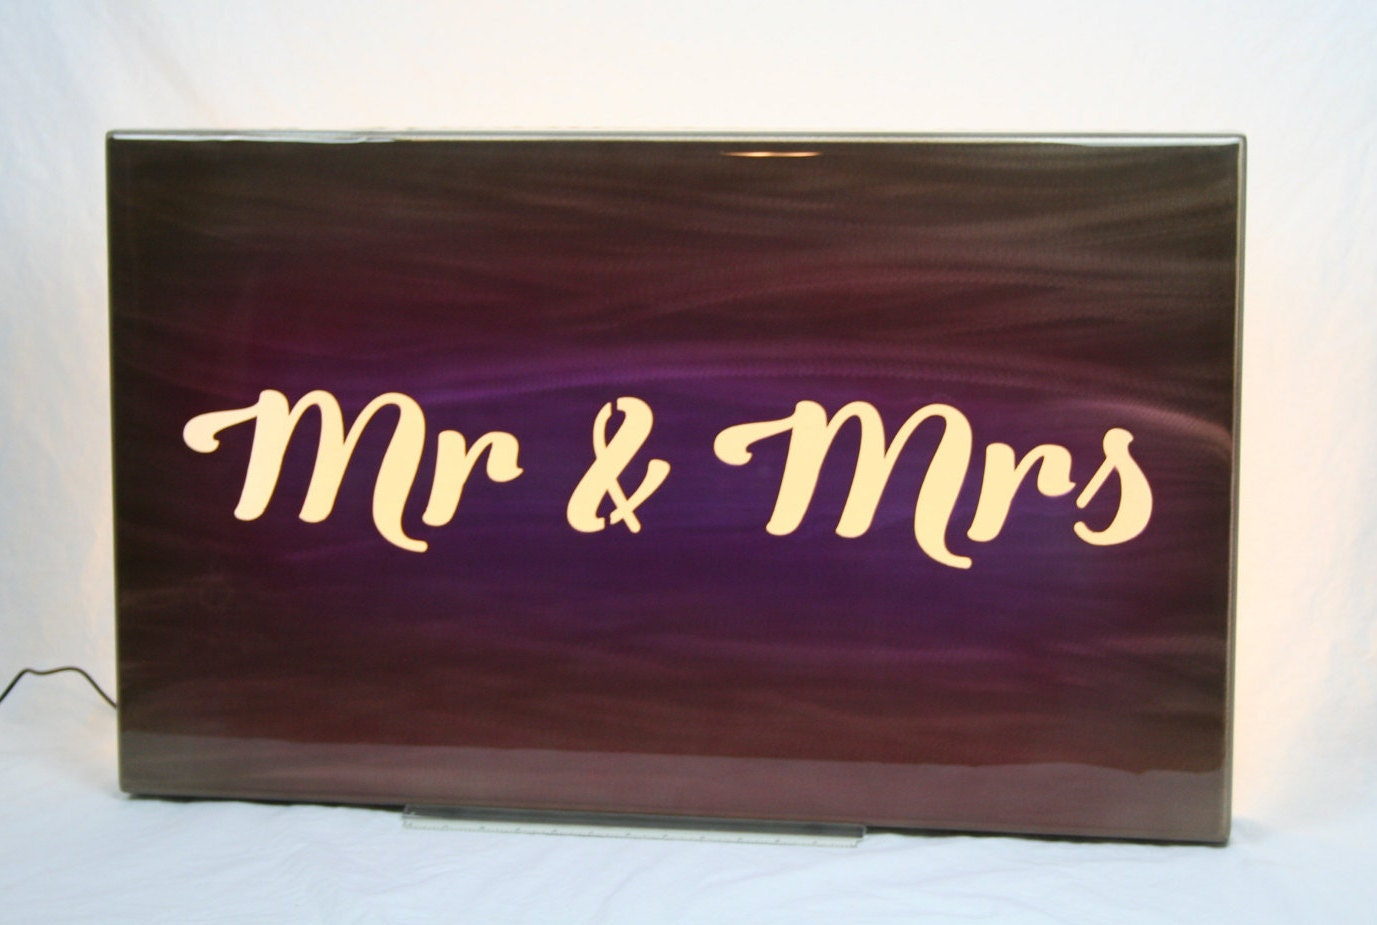 Mr & Mrs backlit sign, wall light, mr and mrs sign, led lighting